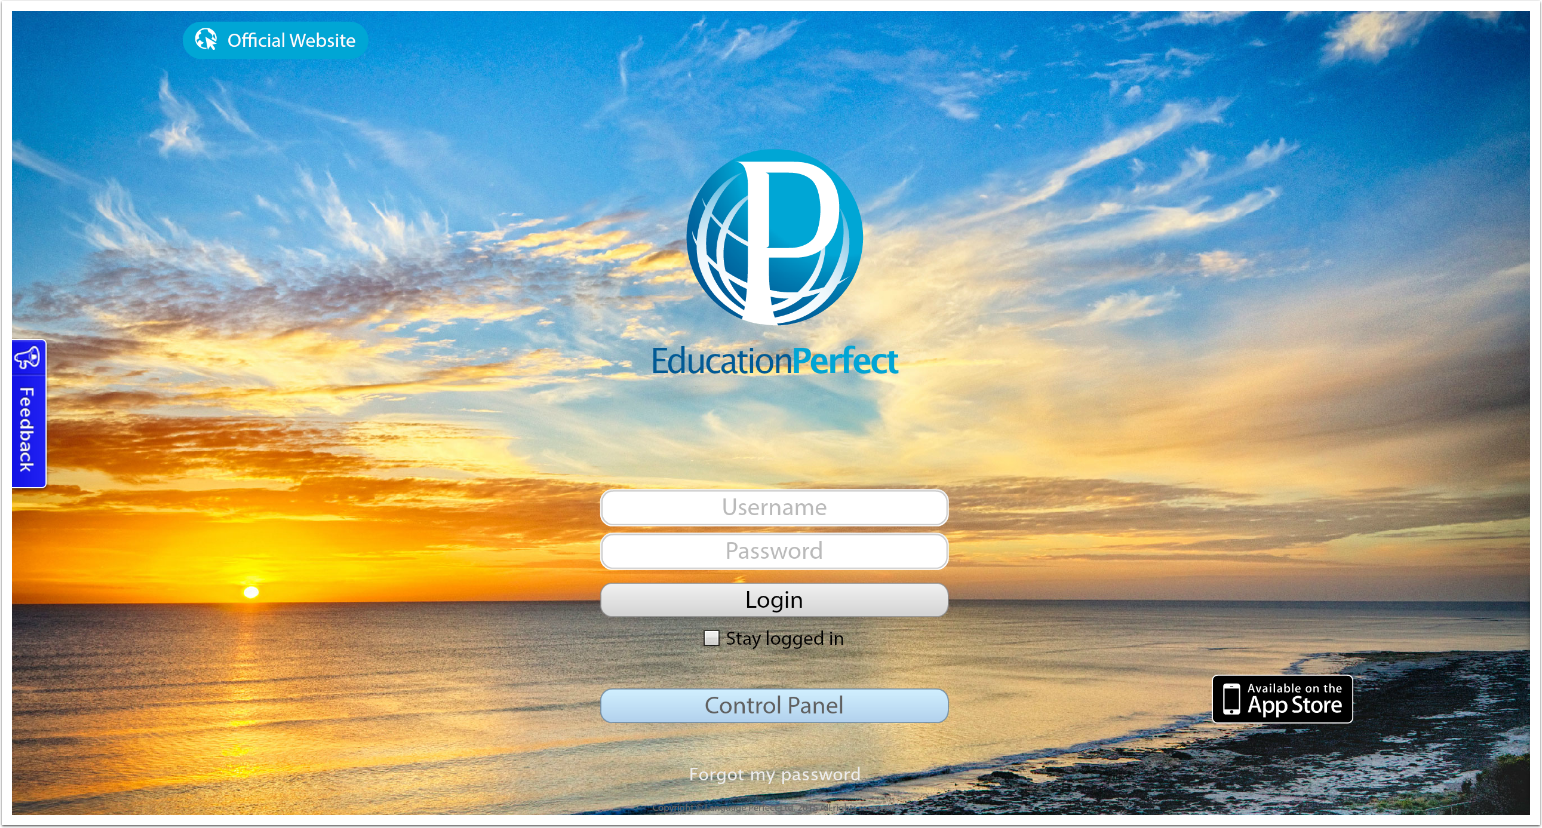 To get started, you'll need to login to www.educationperfect.com and click 'Login'.